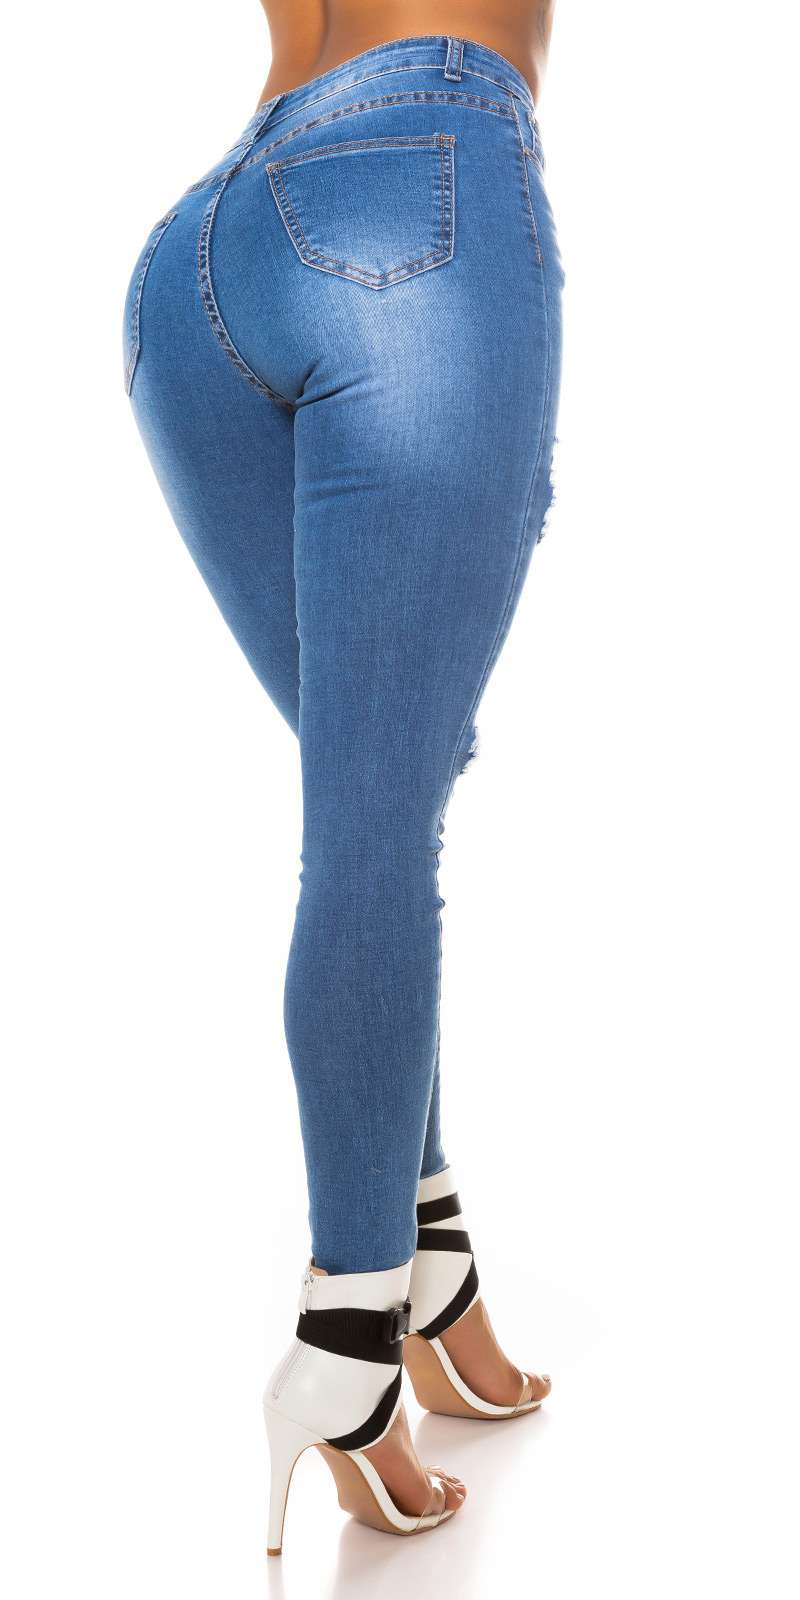 High Waist Jeans Lesha